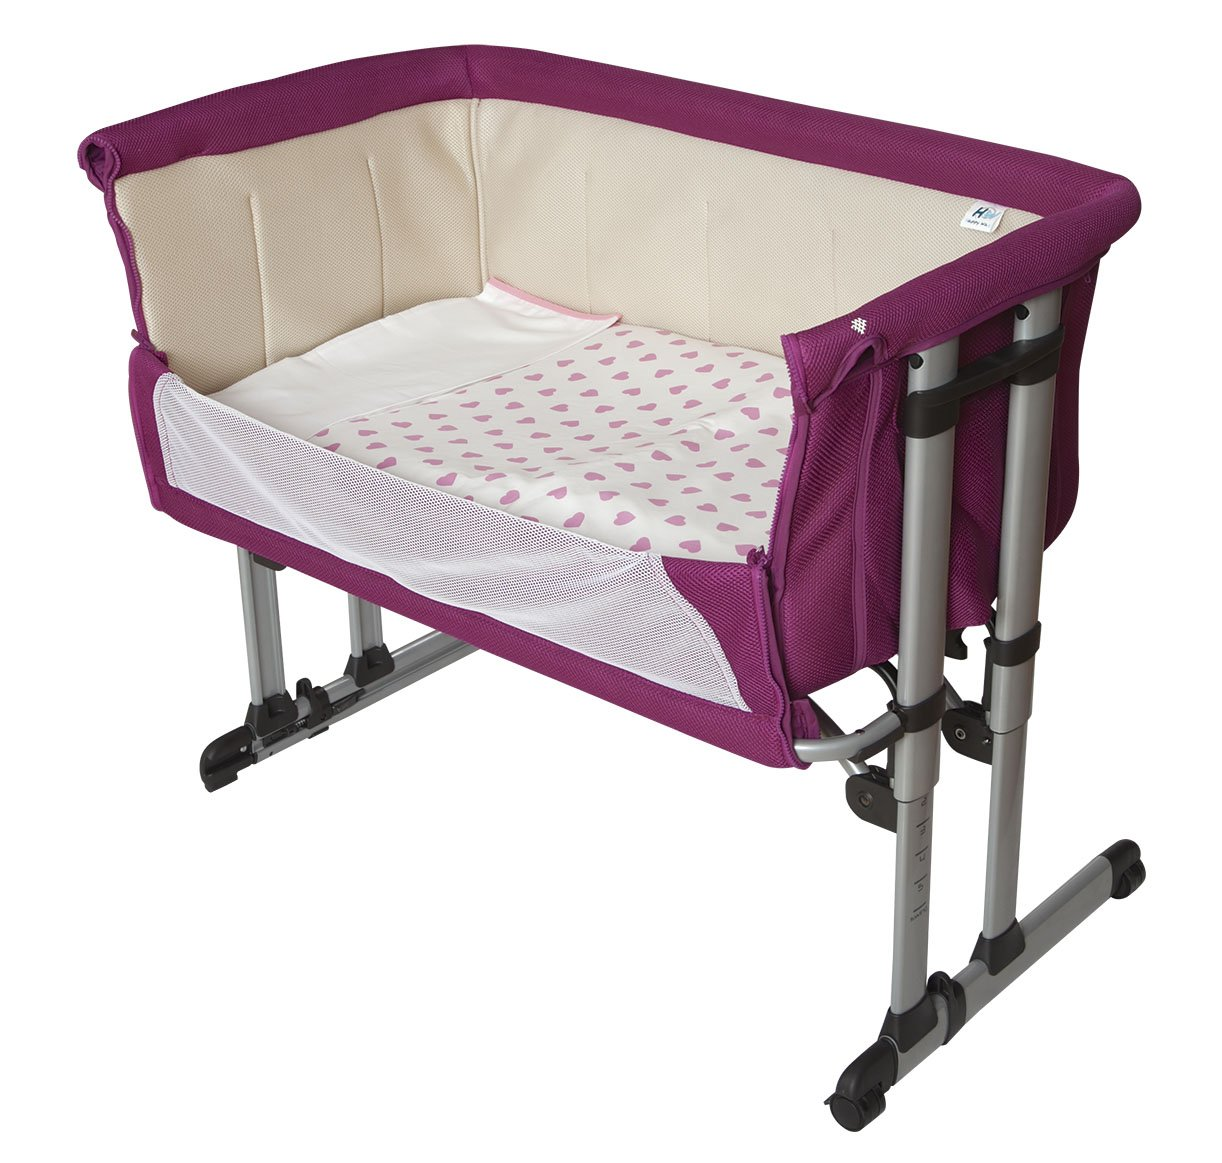 minicuna Baby colecho Adjustable 6 Heights, Aluminium. Quilt + Pillow Case + Fitted Sheet of Gift  The crib that promotes the Co-Sleeping, night nursing and allows you to sleep close to your baby Height adjustable in 6 positions for greater adaptability thanks to its adjustable feet is also compatible with beds with drawer The cradle can be separated from the parents bed, then be used as a standard cot mattress measurements of the minicuna: Length 94 mm x Width 69 x Height 82 cm: Length 80 x Width 50 cm Recommended age: 0 to 6 months (or a maximum of 9 kg) 1